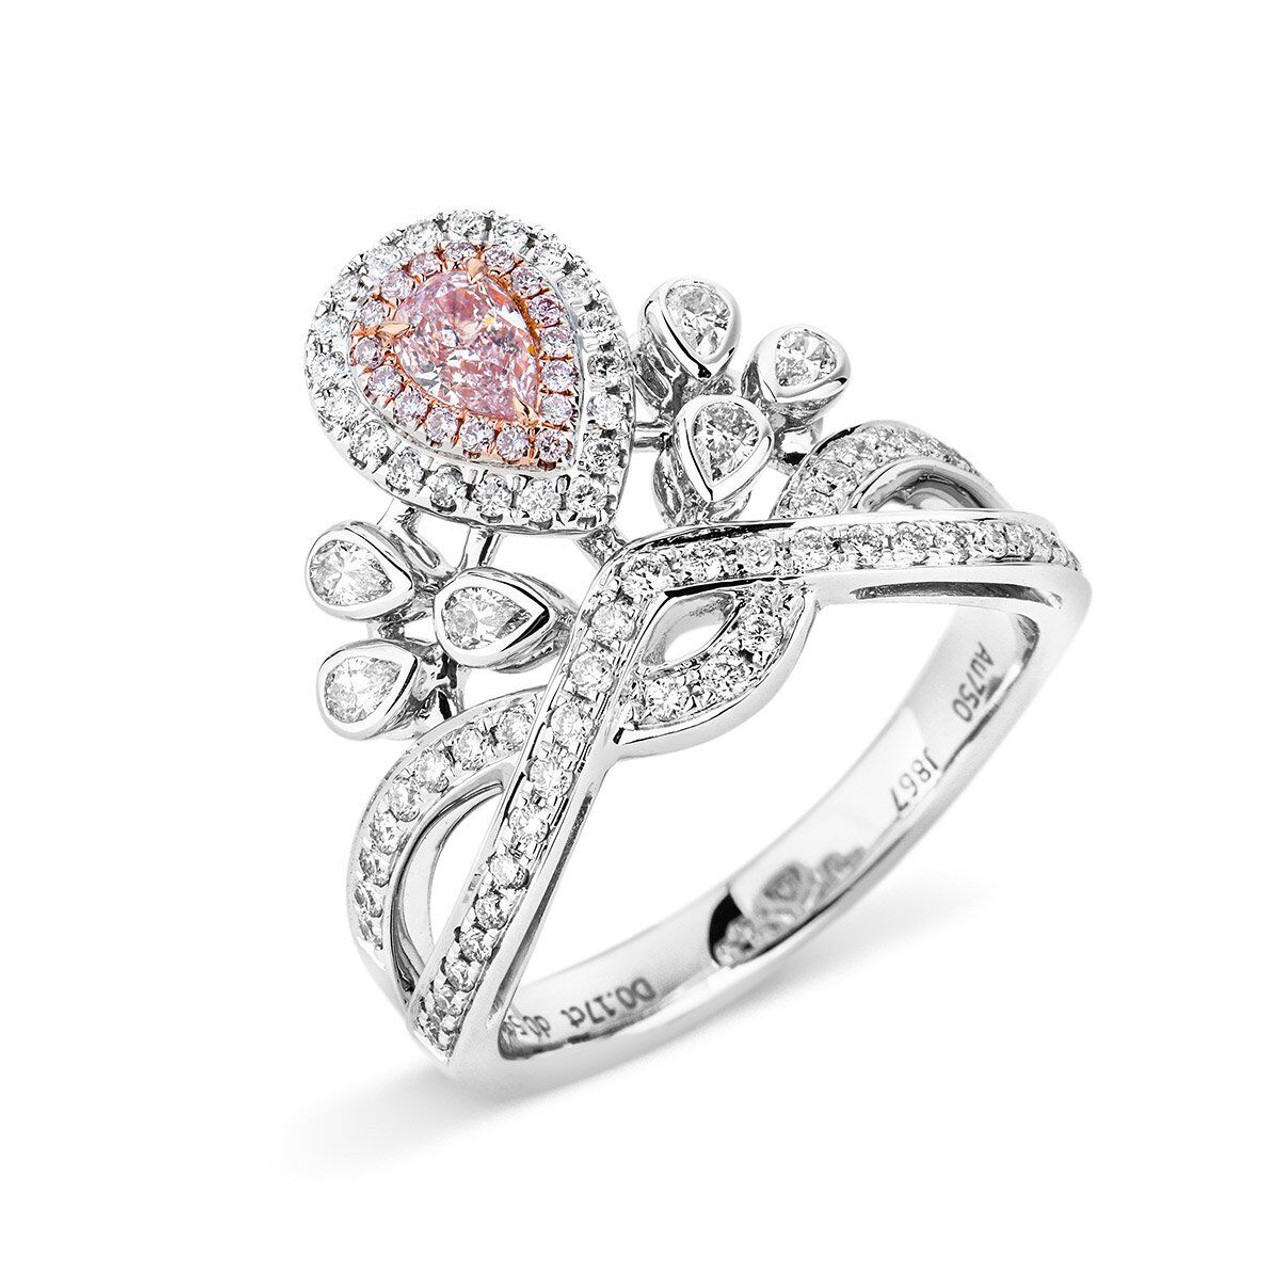 18Kt White and Rose Gold Pink Diamond Crown Ring - Wedding Bands & Co.